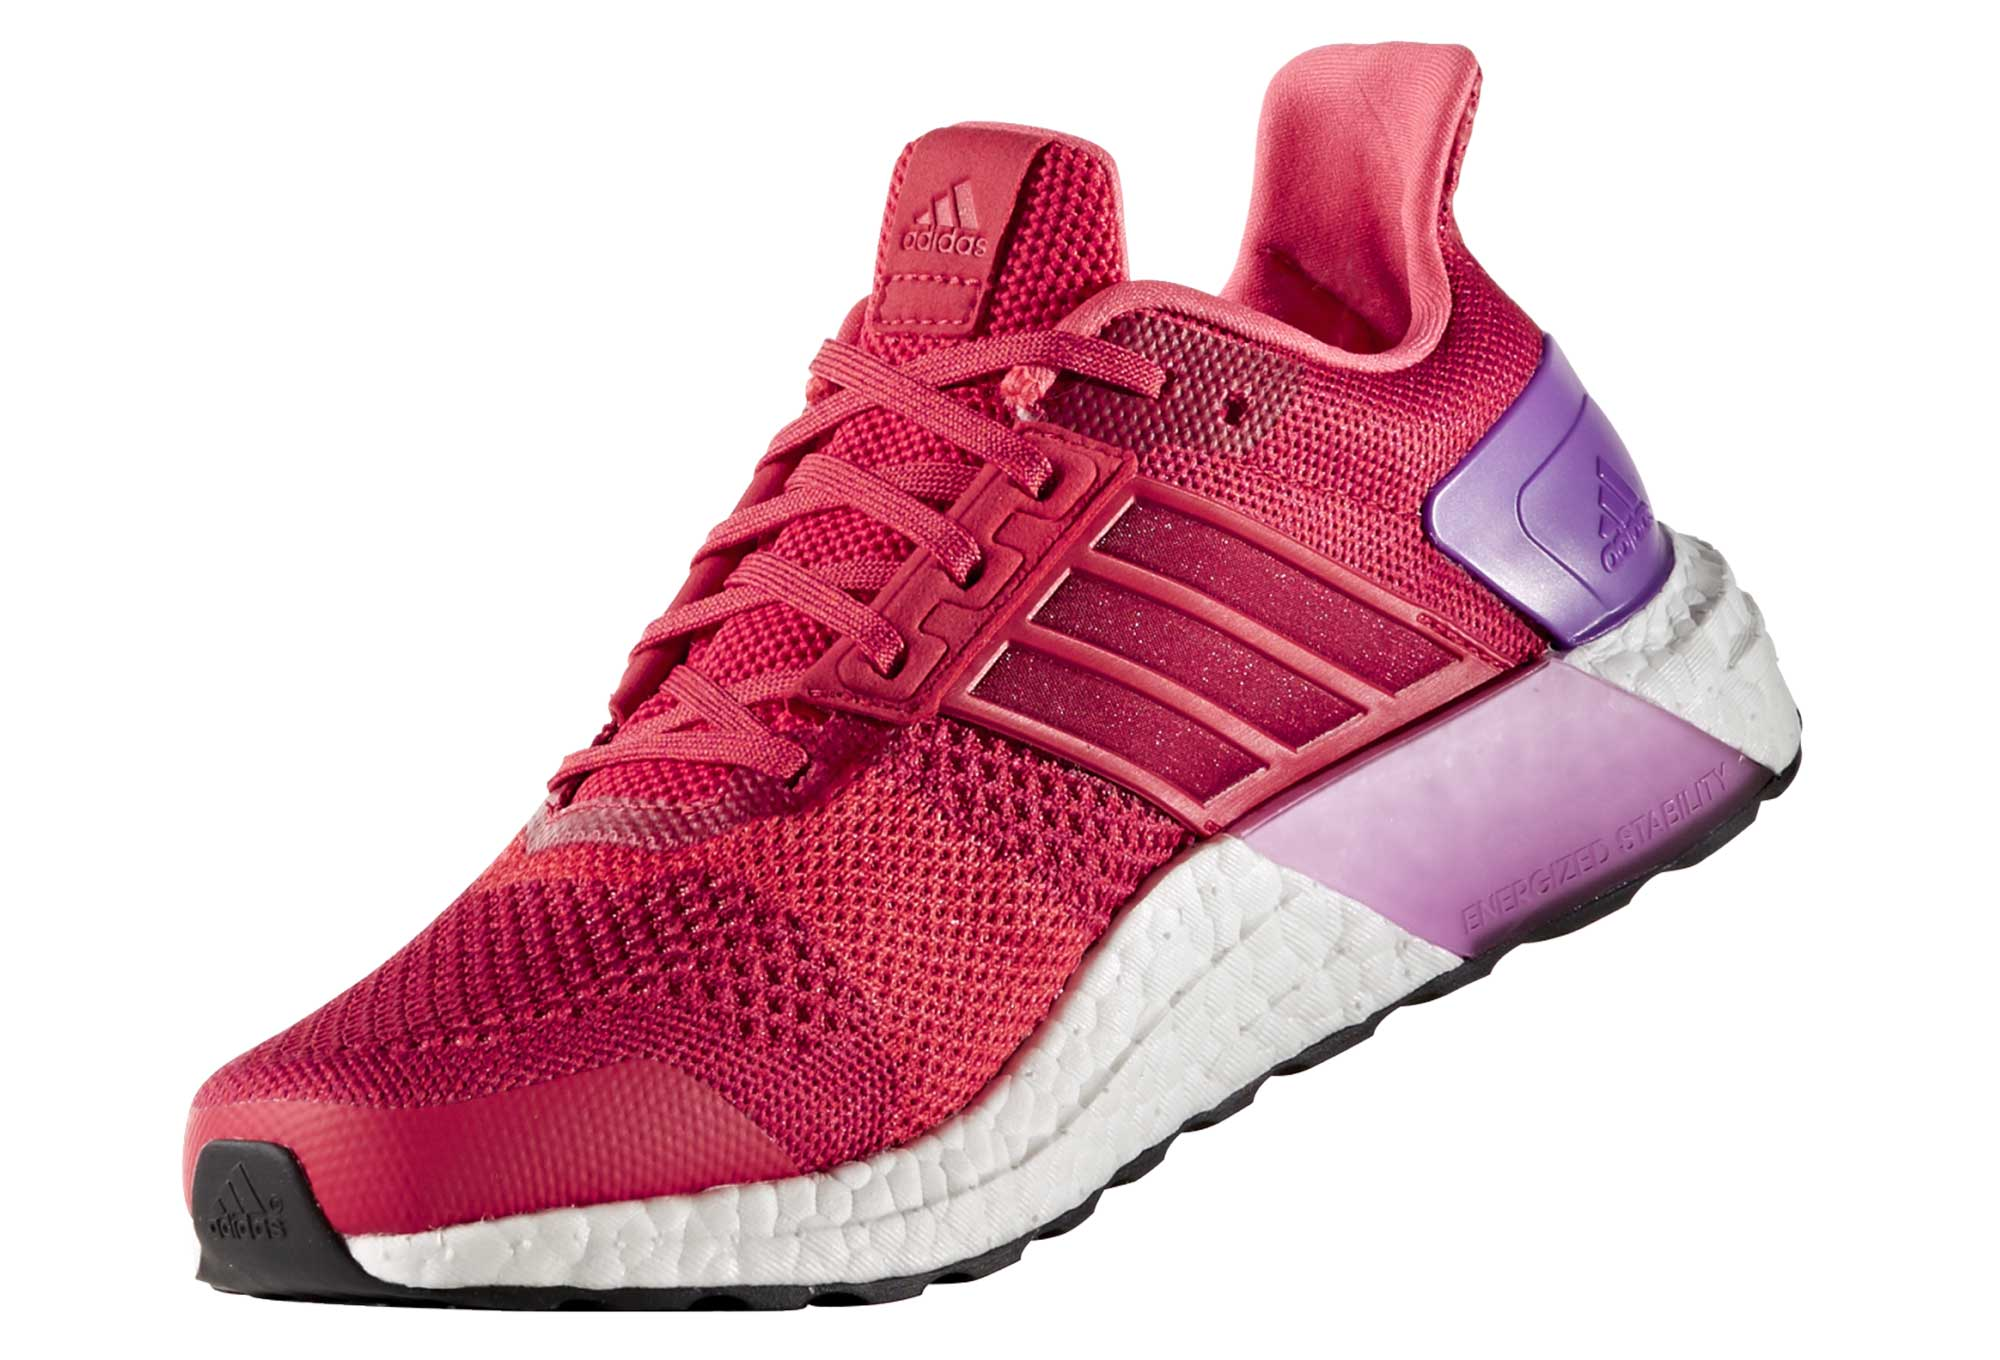 wholesale dealer f0ea8 f7547 ... authentic chaussures de running femme adidas running ultra boost st  rose e91fe f43fa